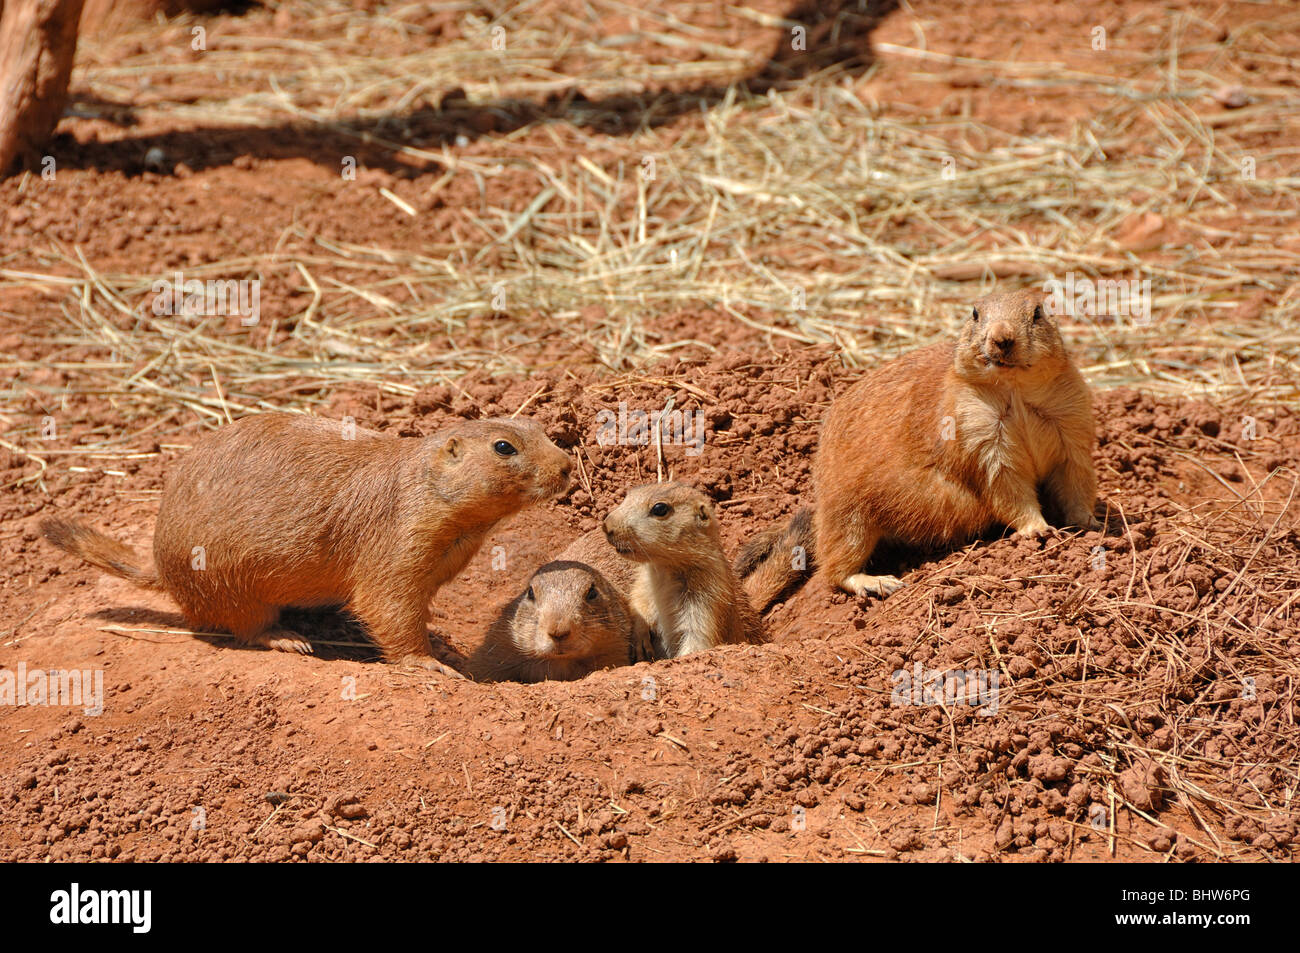 Prairie dogs at Reptile Gardens, Rapid City, South Dakota, USA - Stock Image